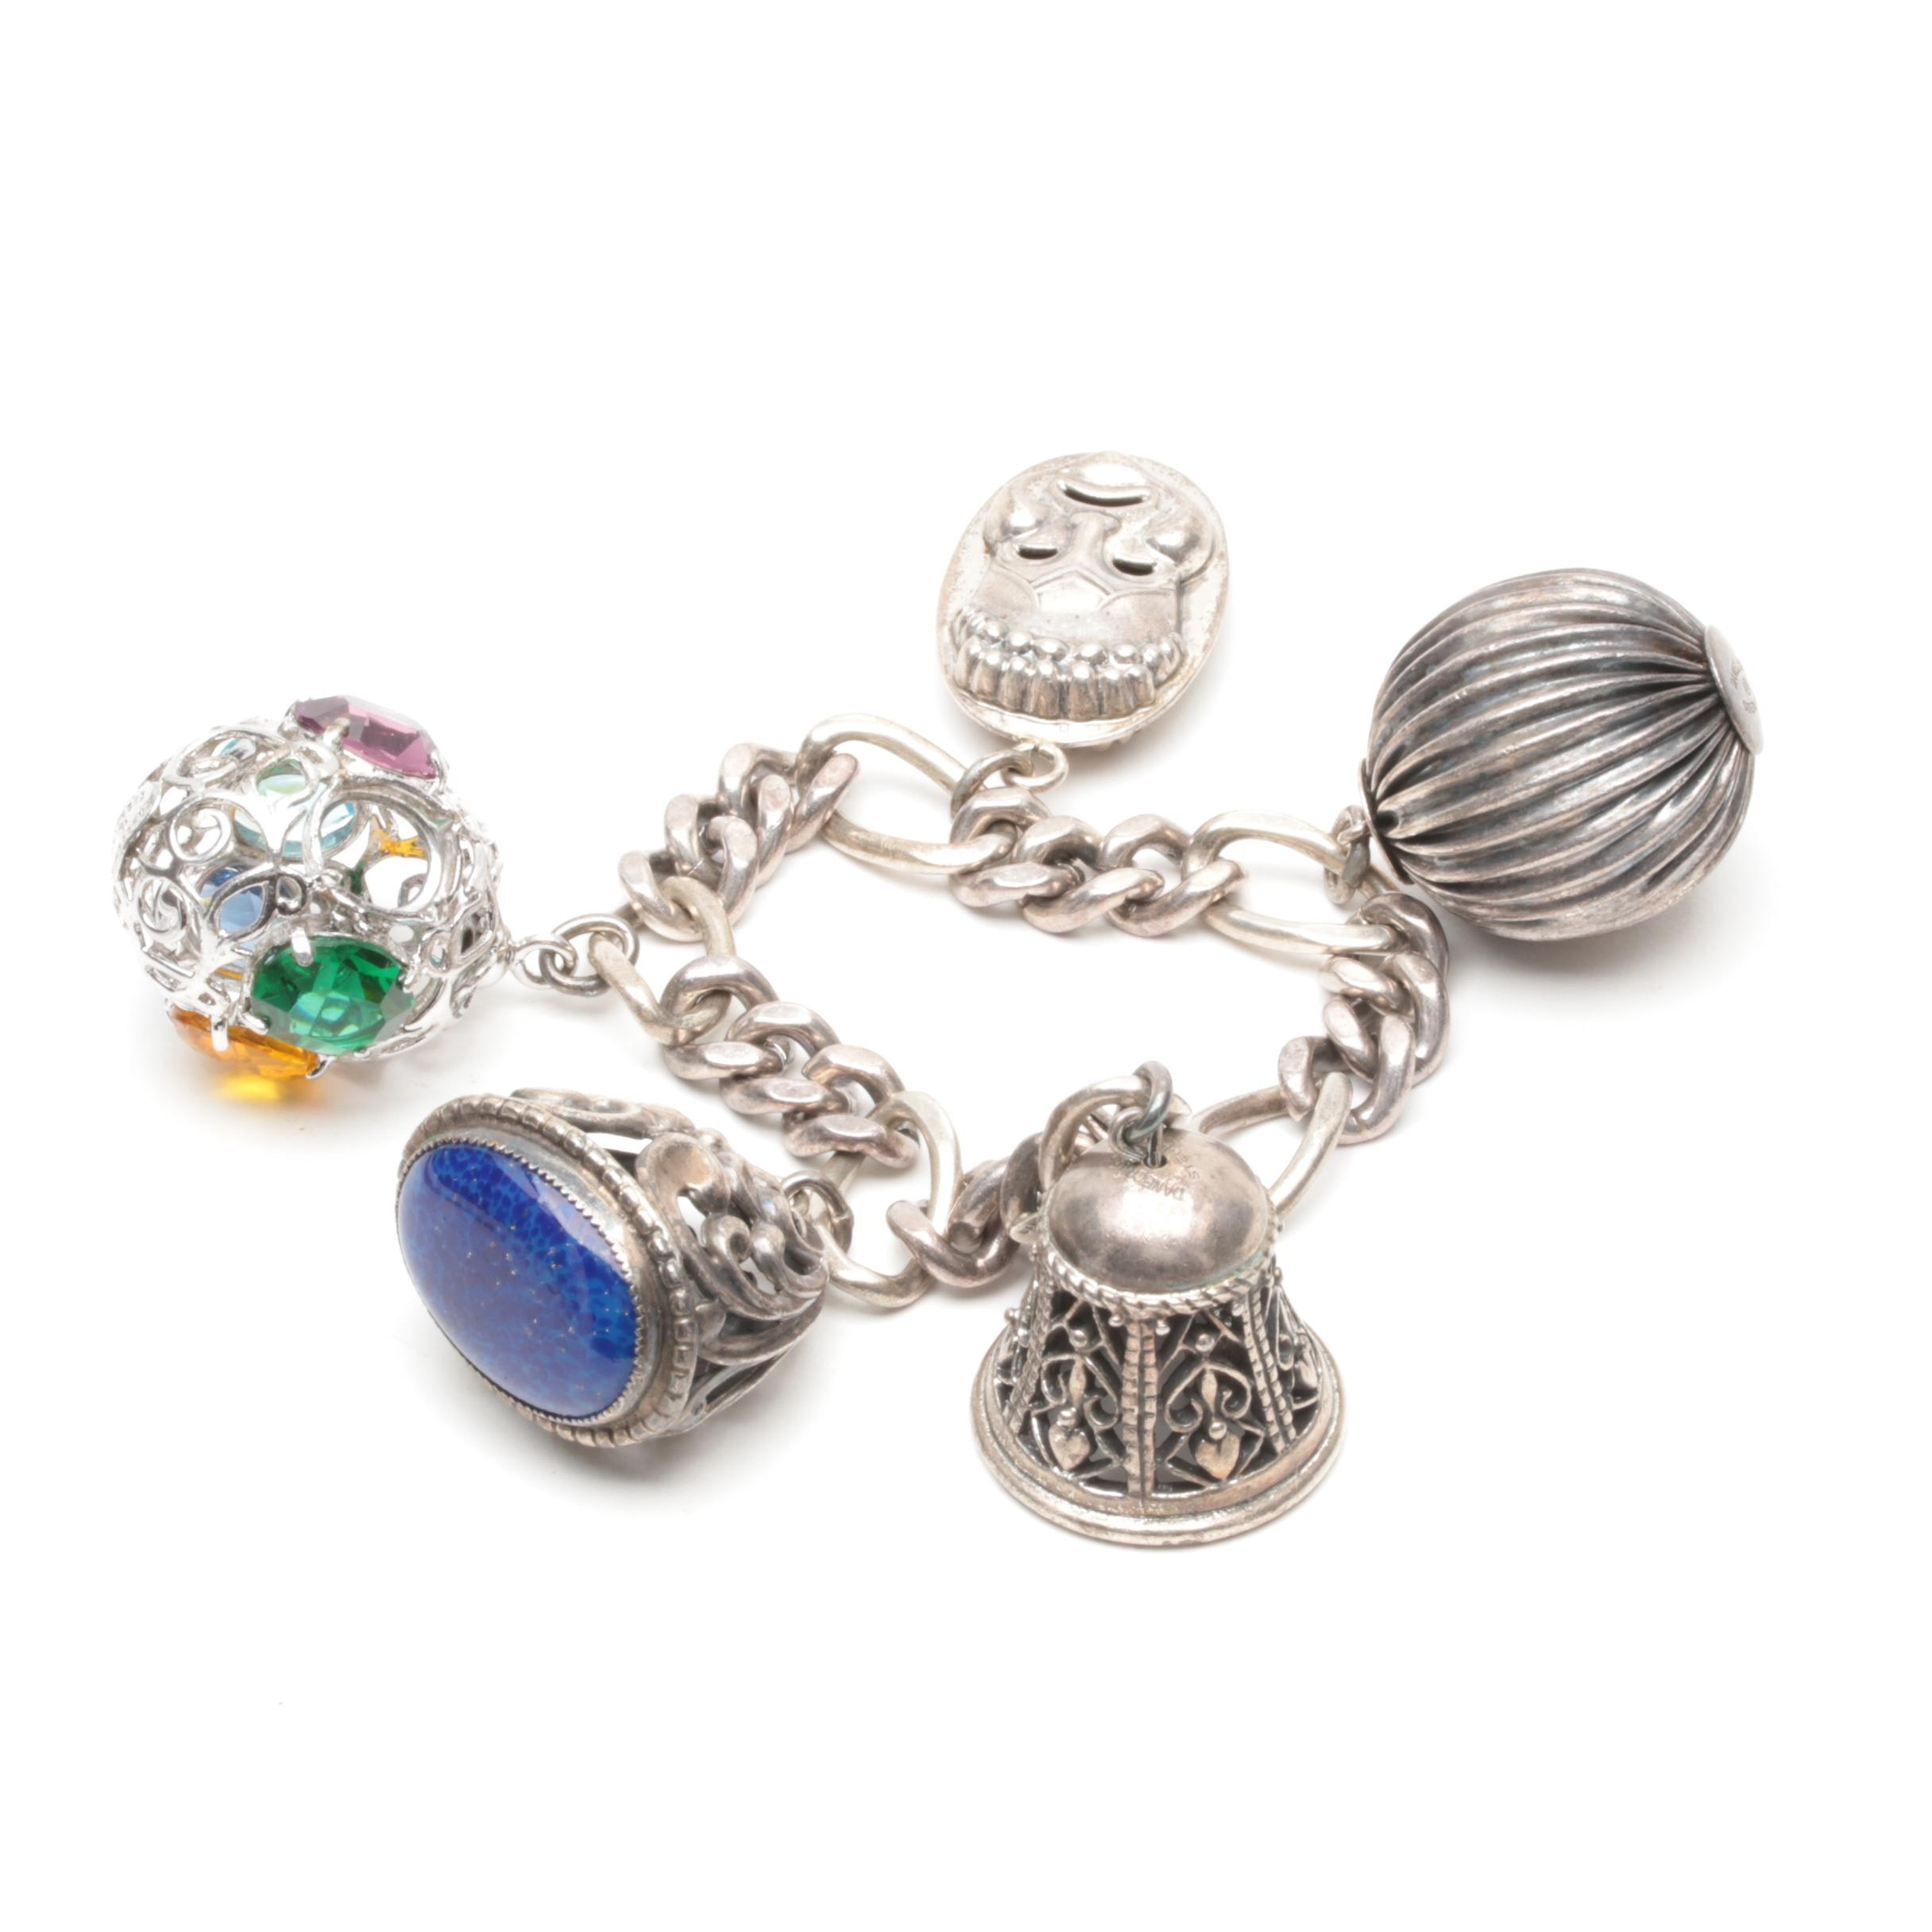 Danecraft Sterling Silver Charm Bracelet with Glass Accents